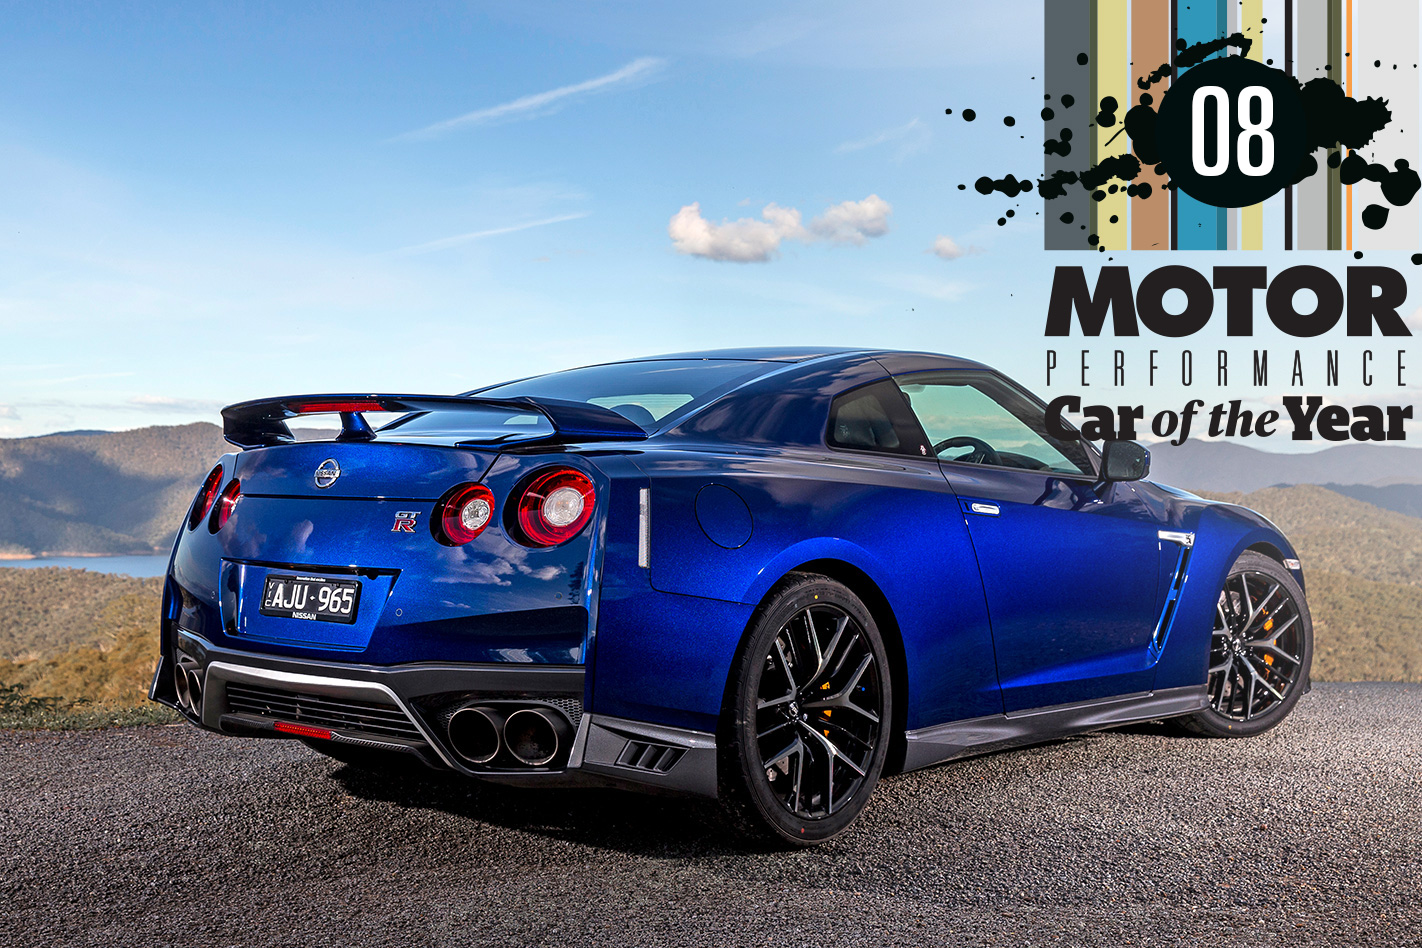 Nissan Gt R Performance Car Of The Year 2017 8